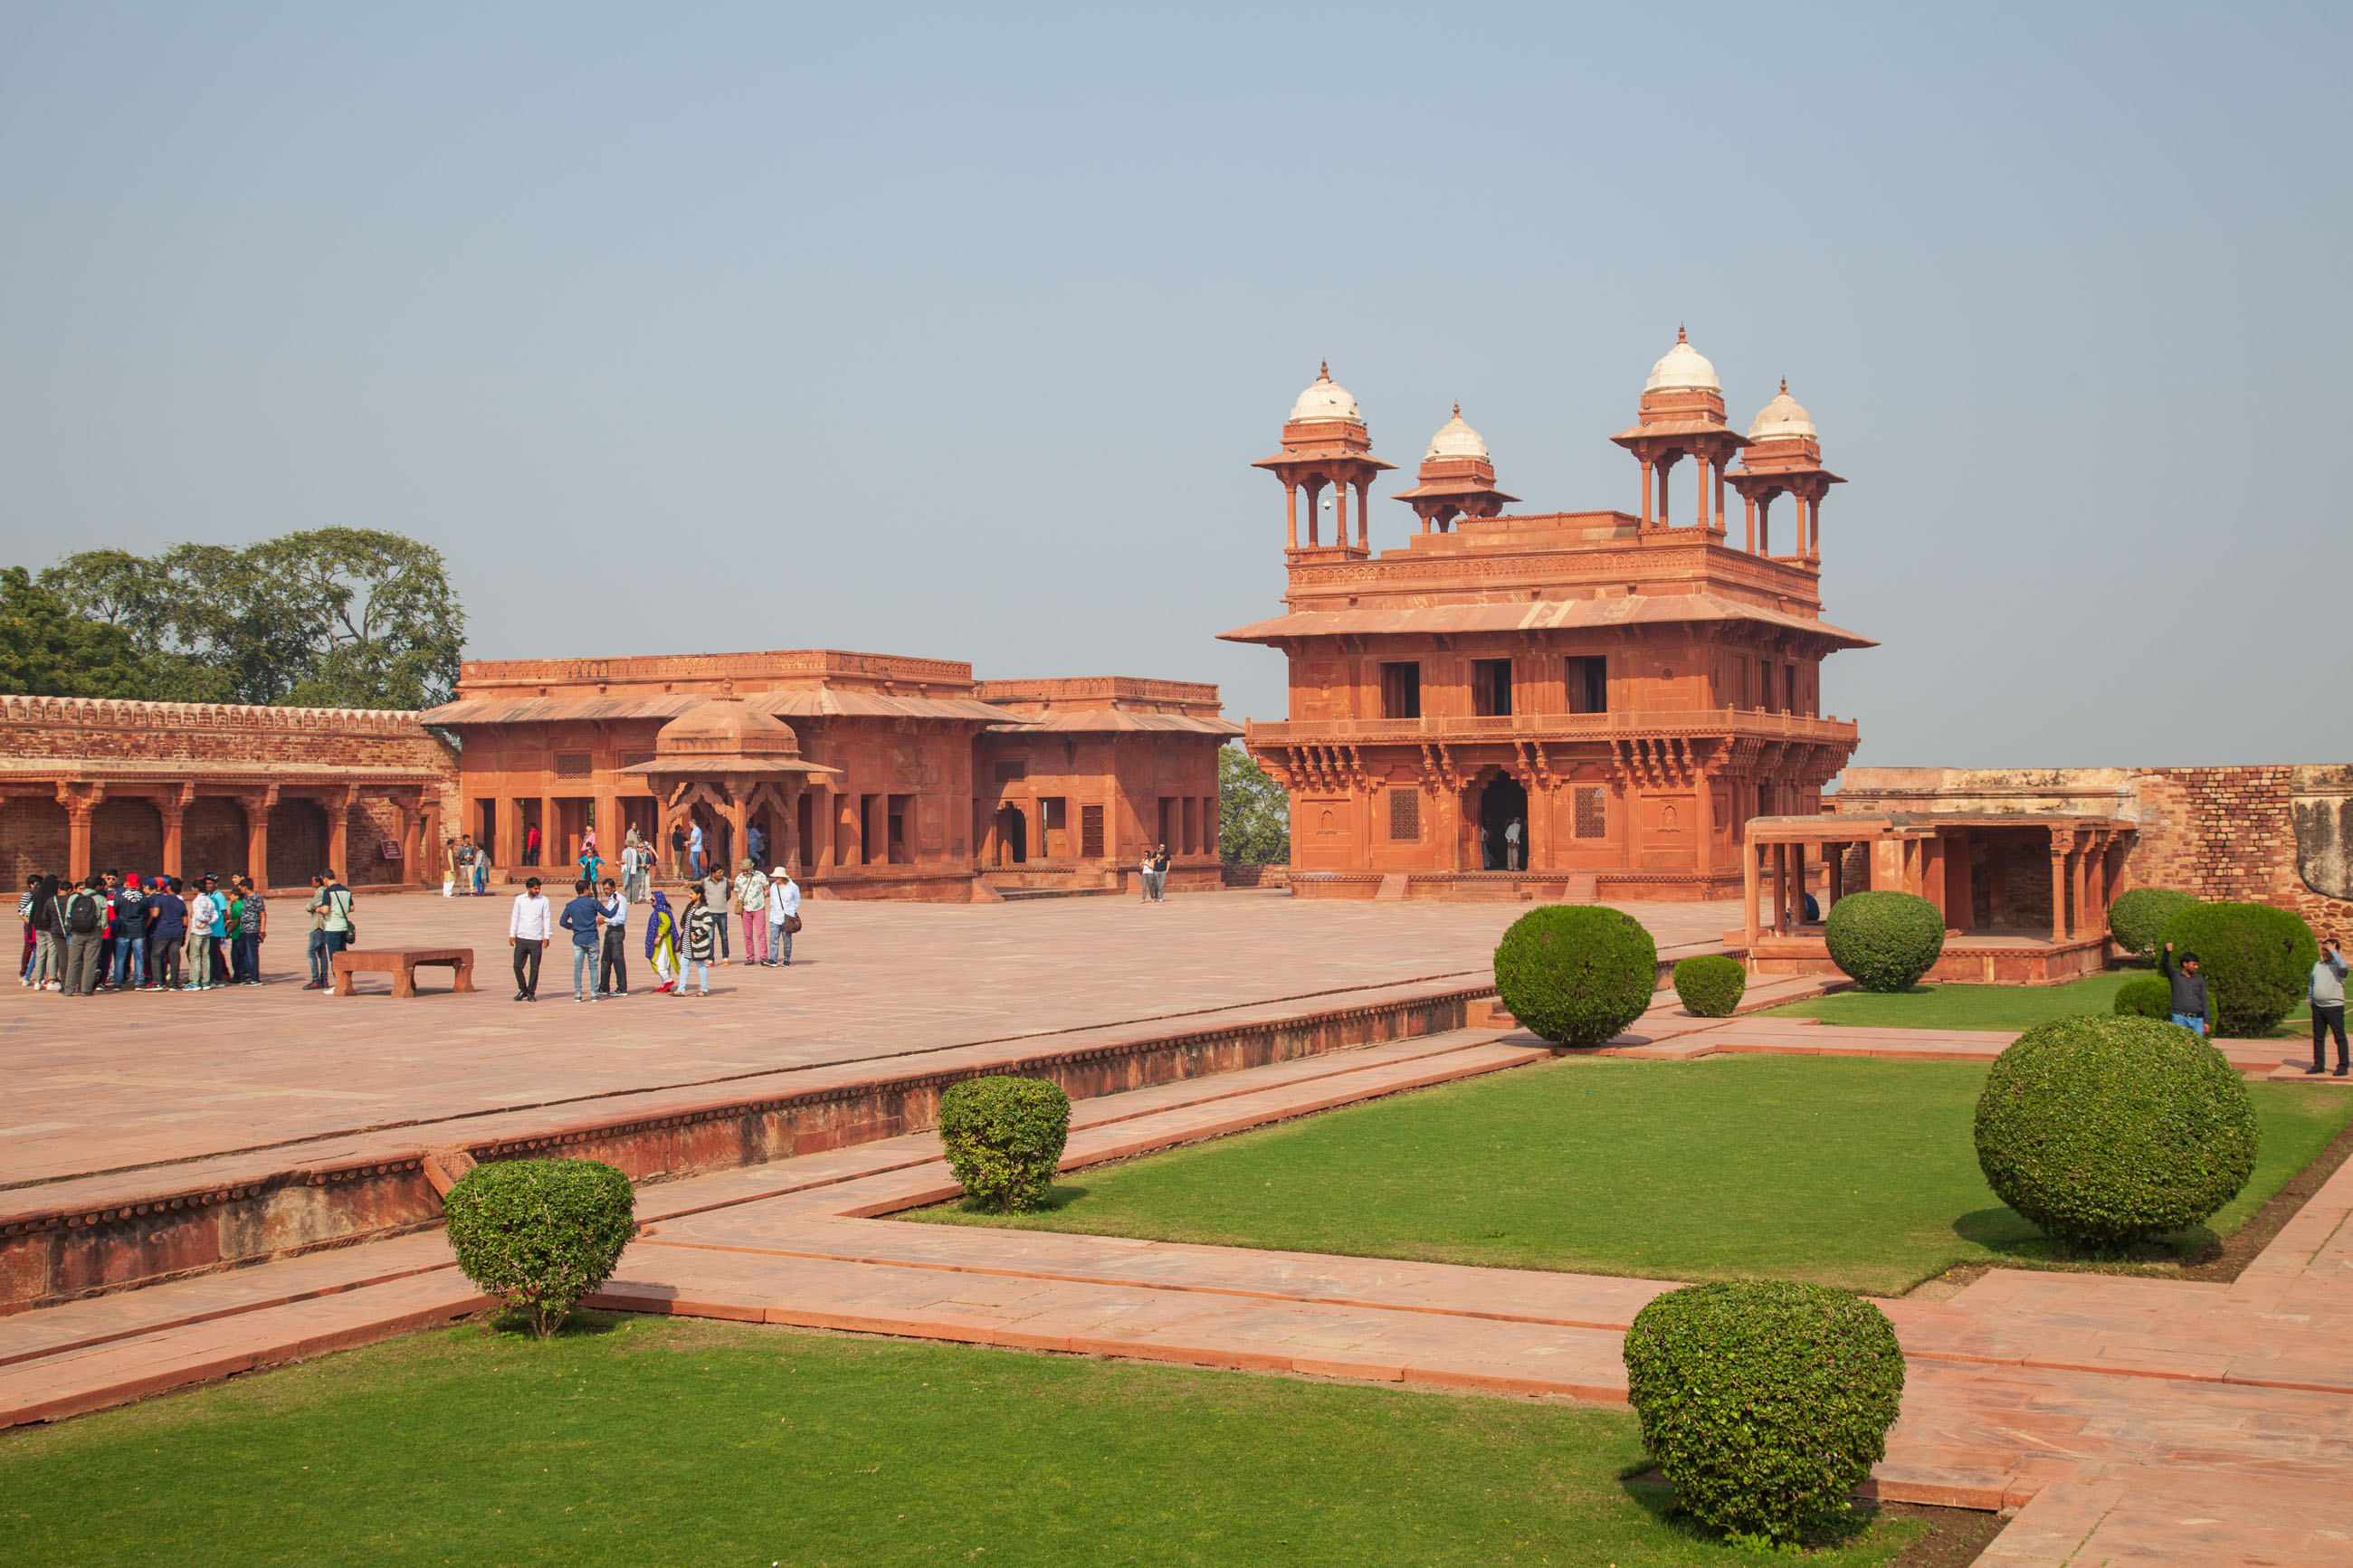 https://bubo.sk/uploads/galleries/4917/samuelklc_india_agra_buland-darwaza_img_0084.jpg